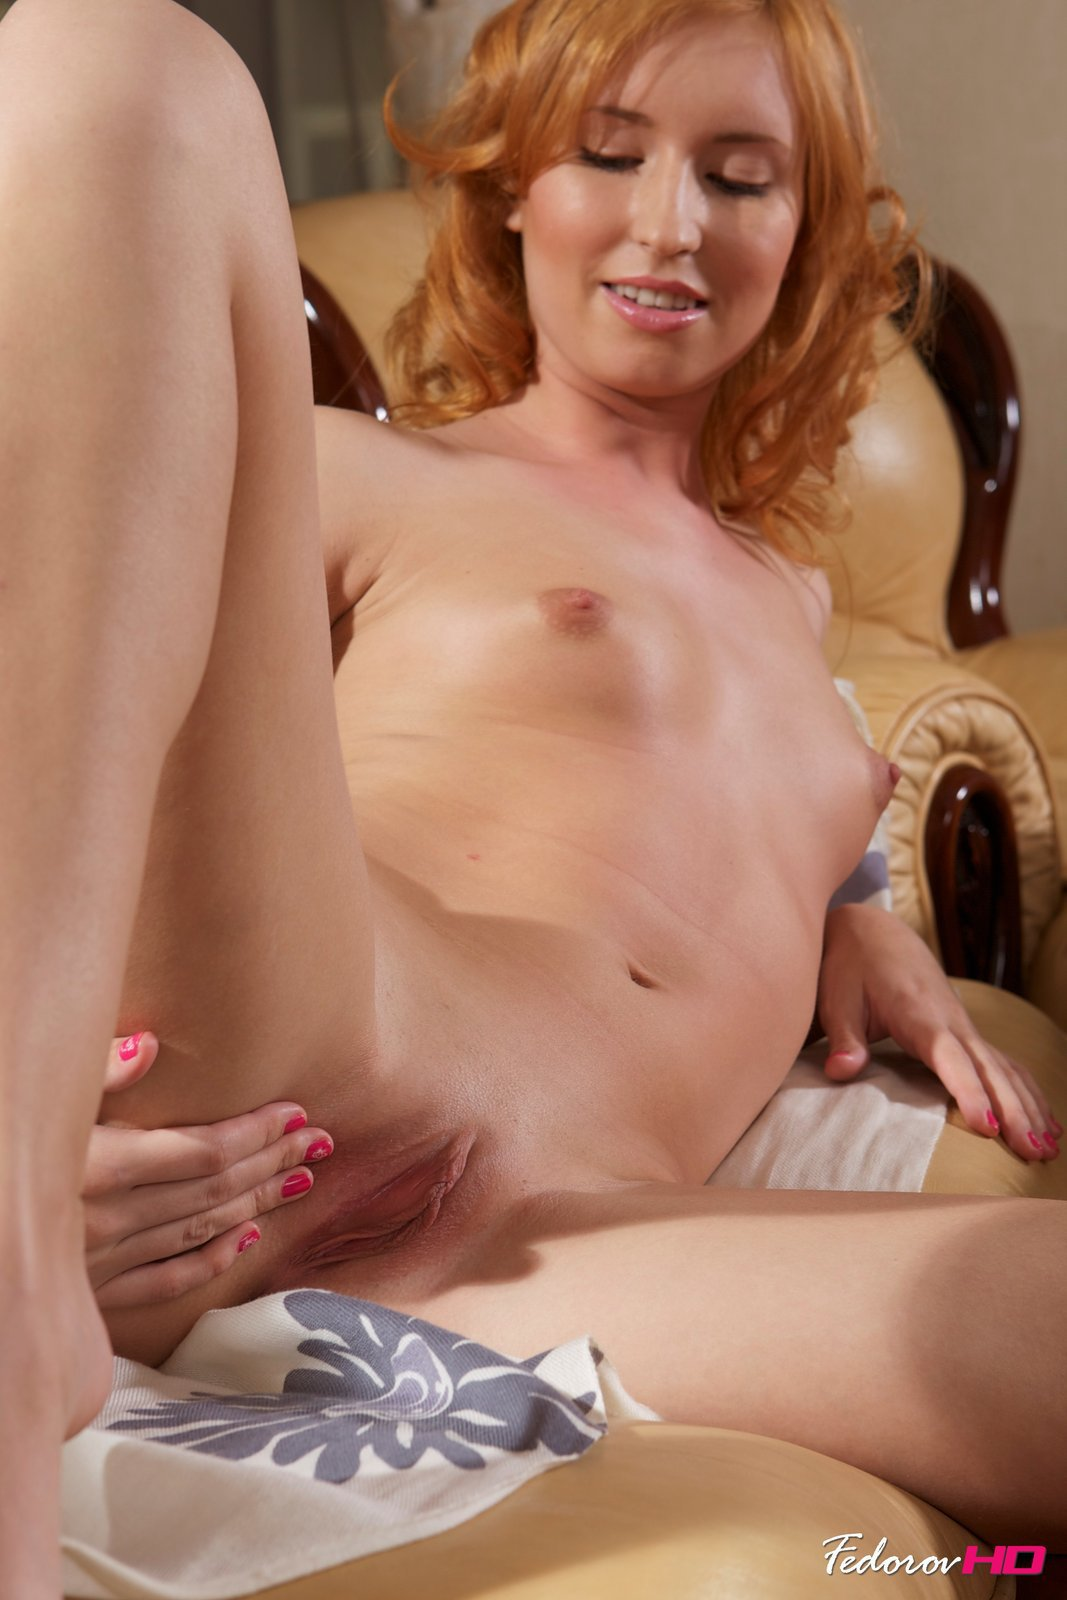 sweetheart passionate lesbian strap on sex mobile